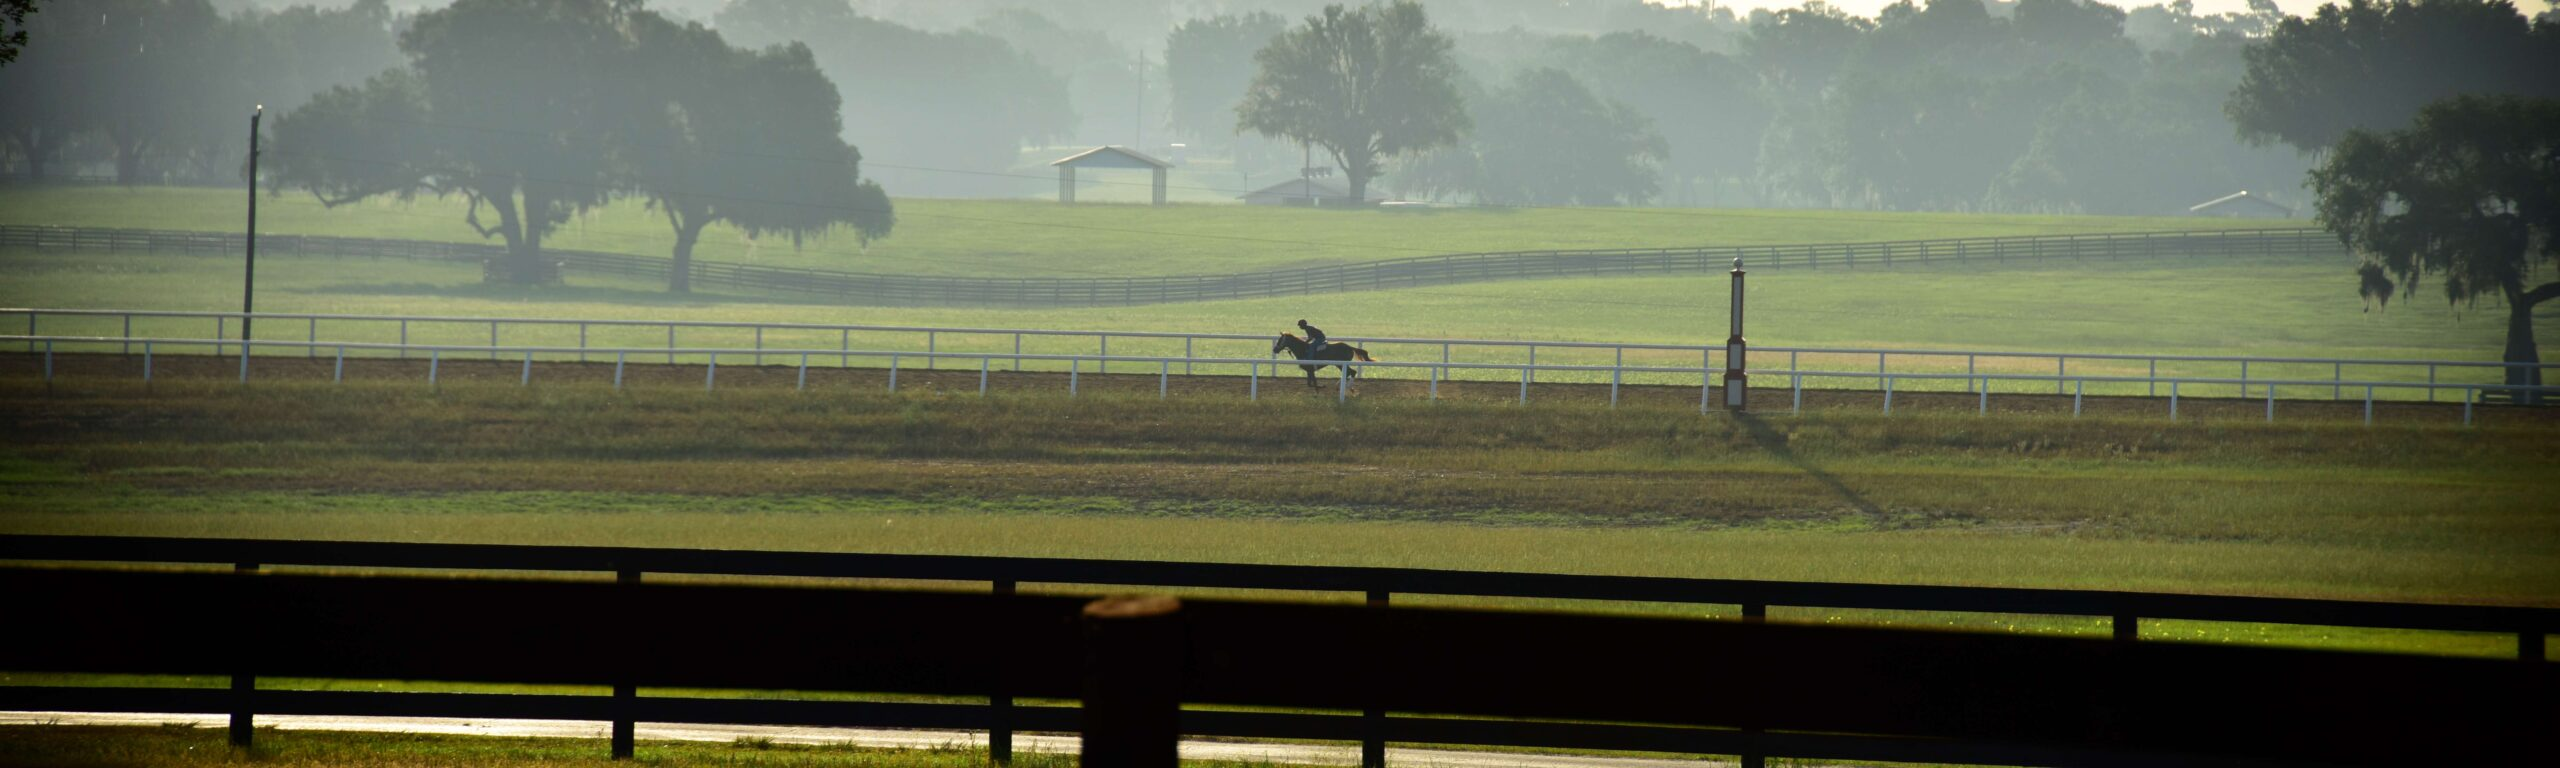 A horse and jockey on the track at Bridlewood Farm